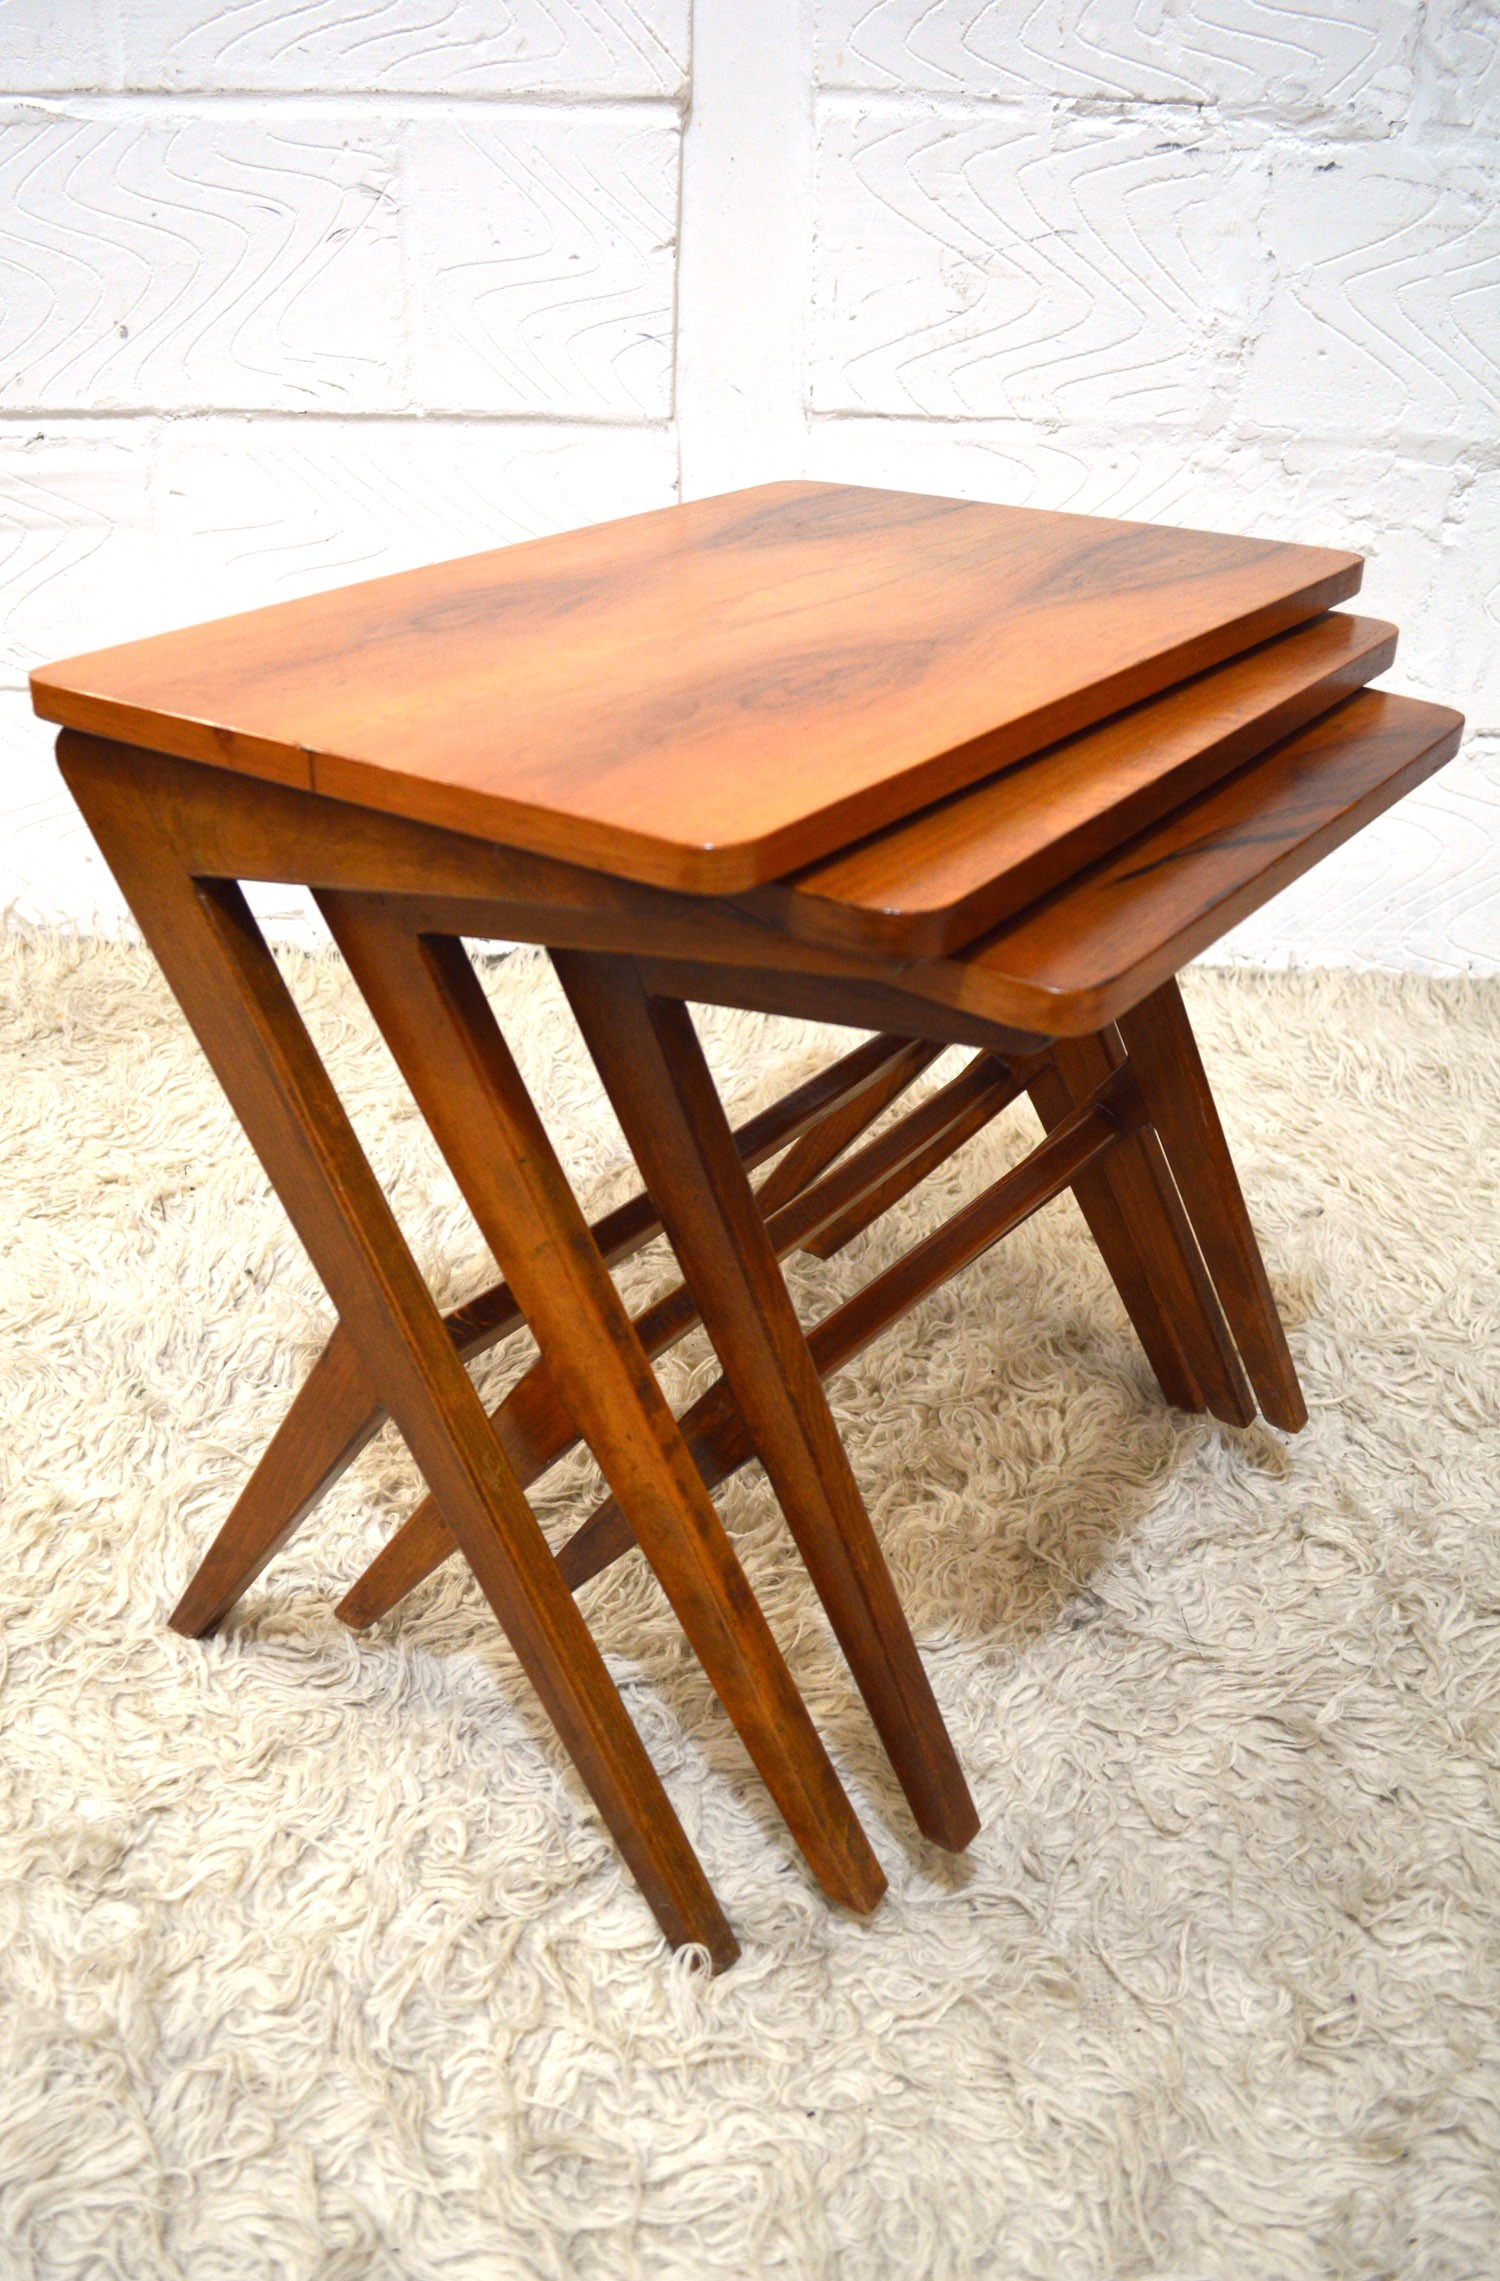 Scandinavian nesting tables in walnut and beech 1950s design market scandinavian nesting tables in walnut and beech 1950s previous next watchthetrailerfo